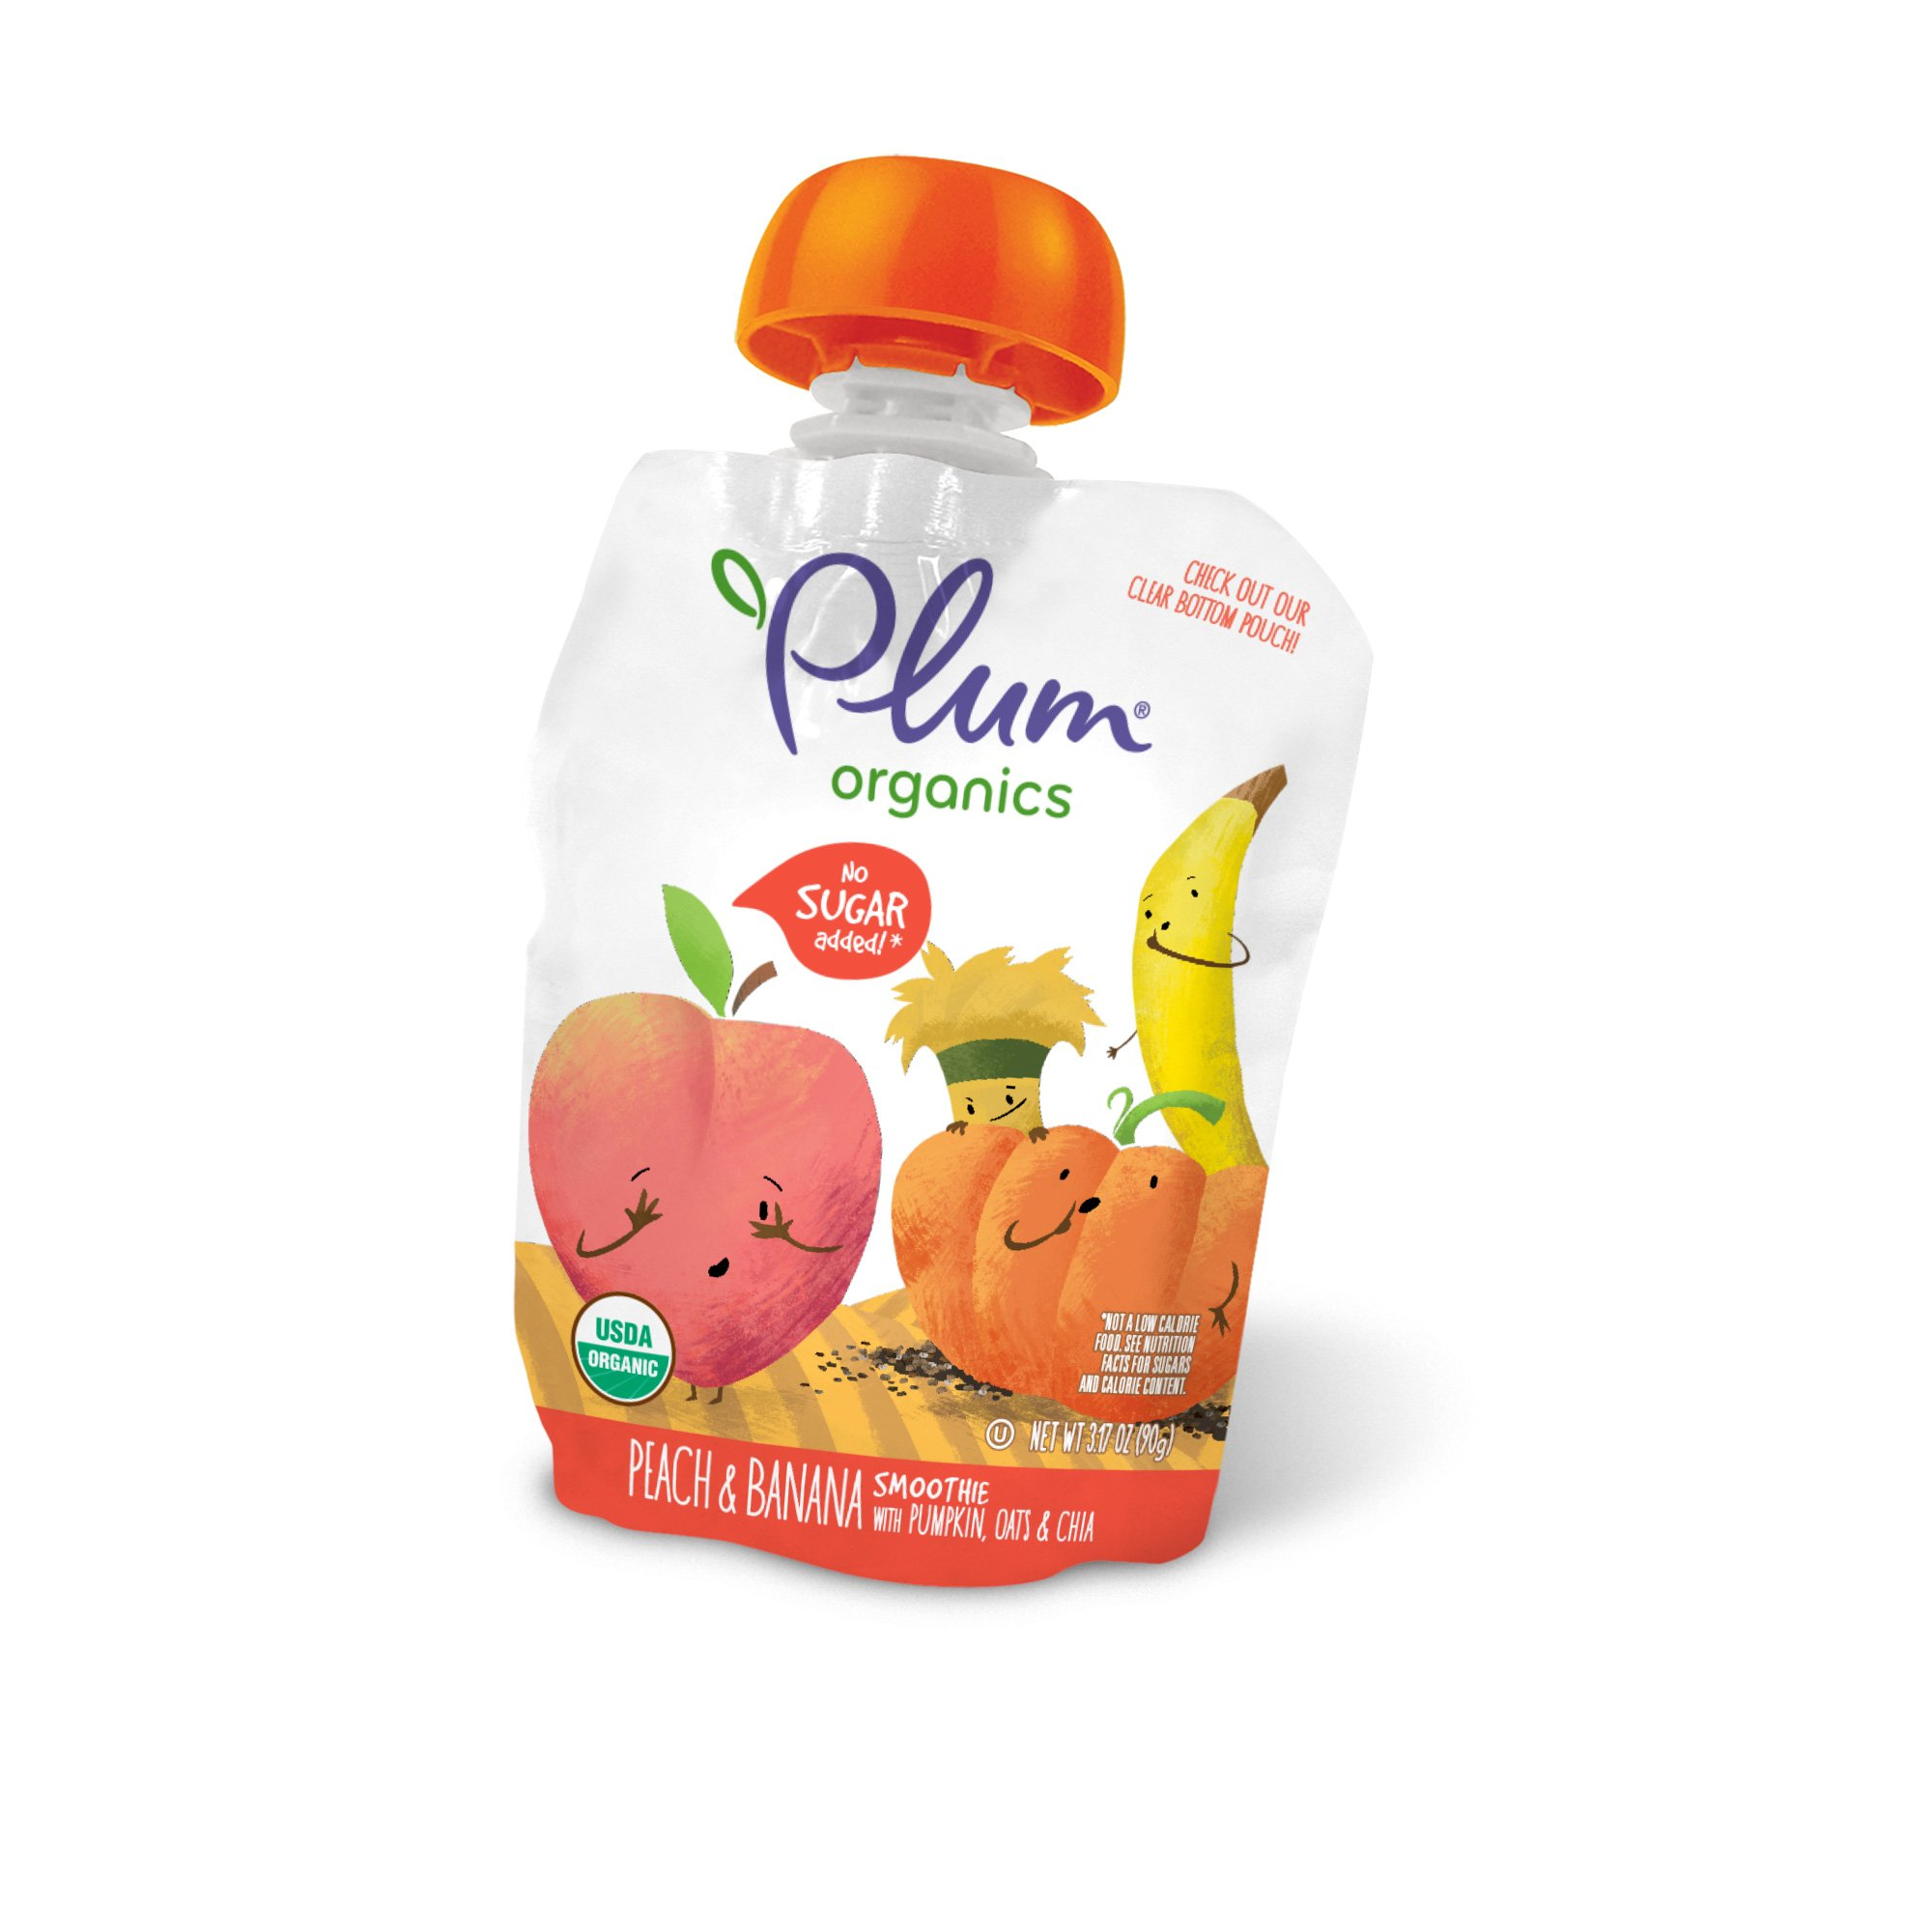 Plum Organics Smoothie, Organic Kids Applesauce, Peach and Banana with Pumpkin, Oats & Chia, 3.17 ounce pouches, 4 count (Pack of 6)